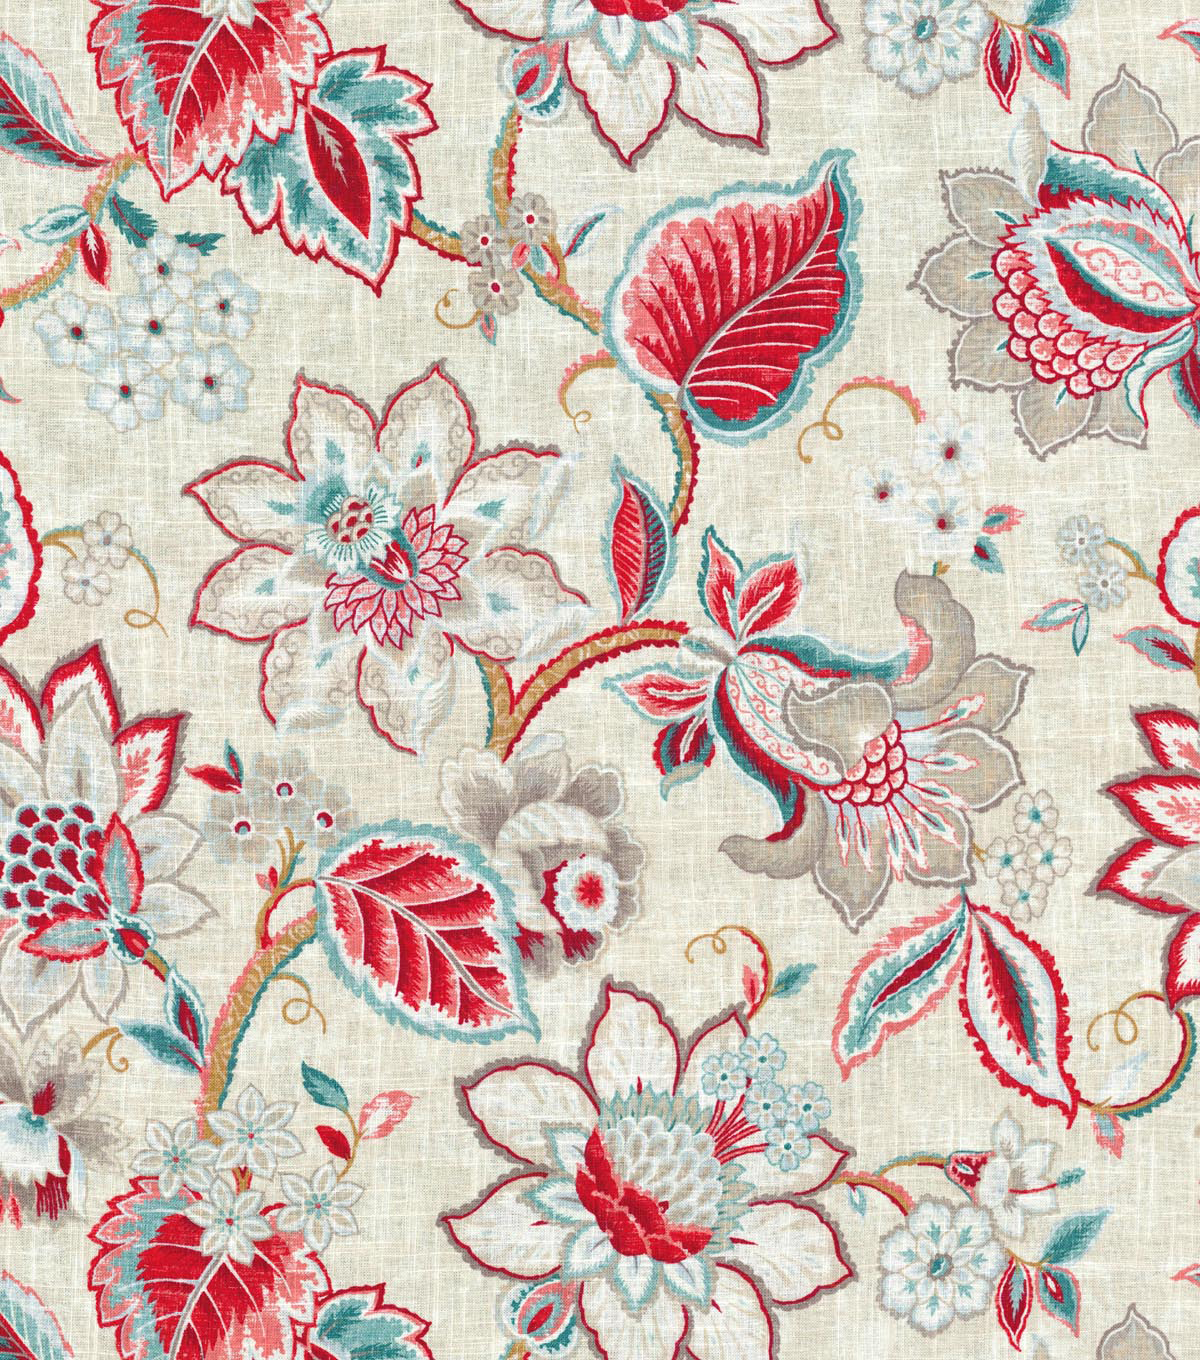 Waverly Multi-Purpose Decor Fabric 54\u0022-Floral Fresh Strawberry